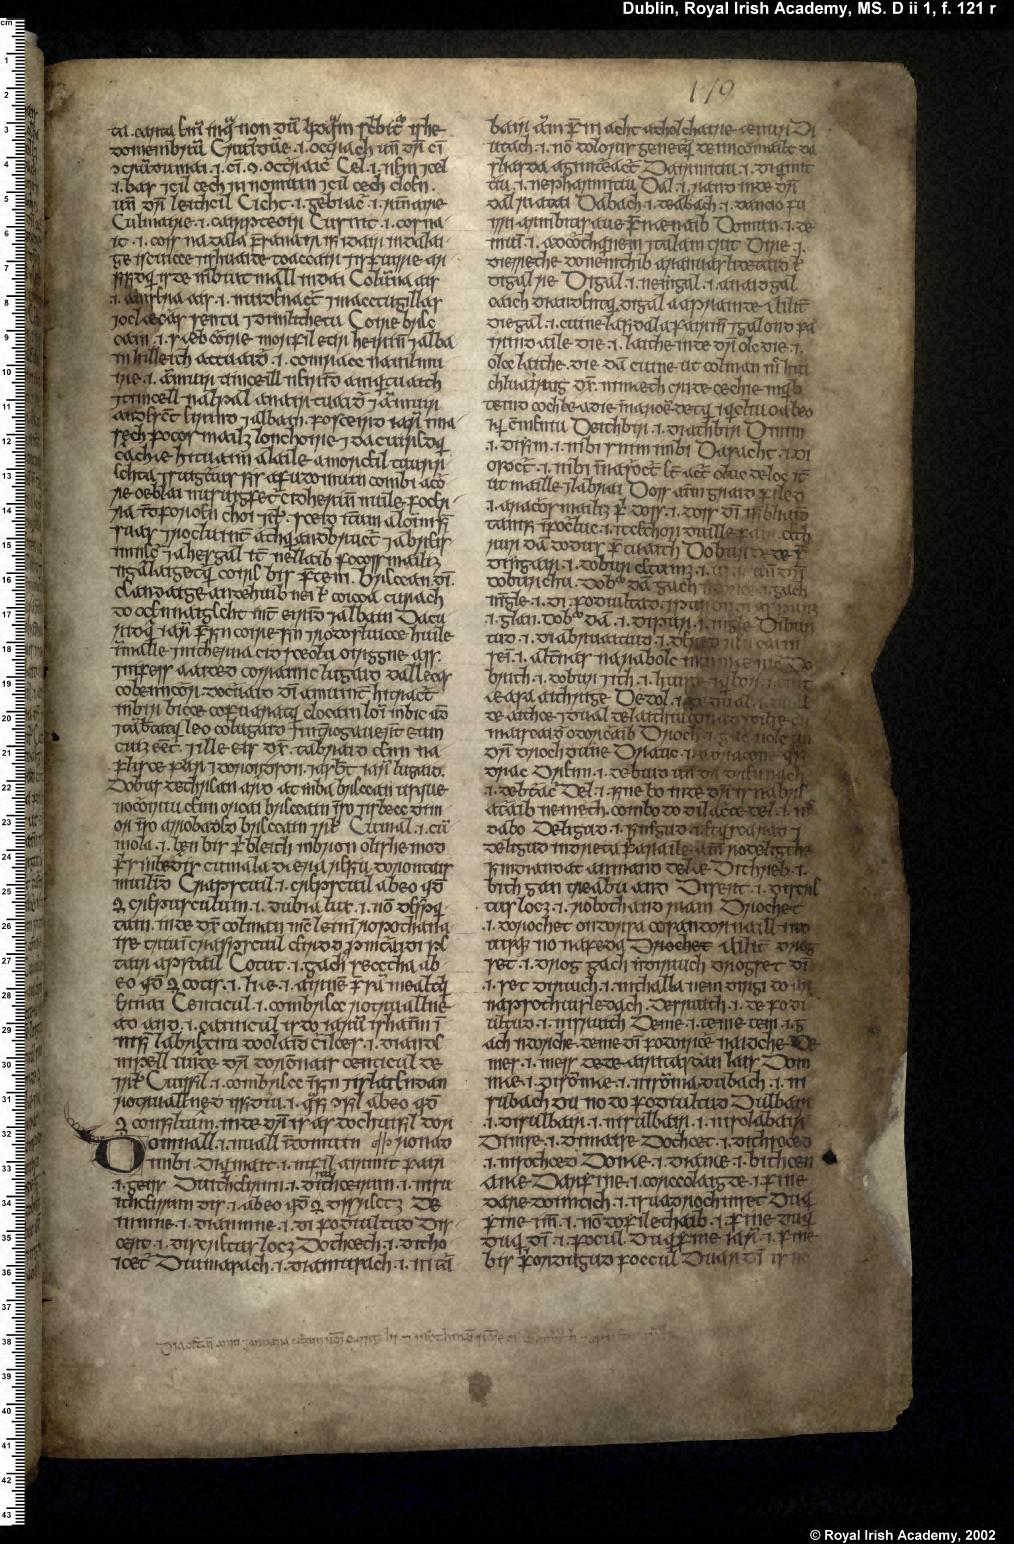 Book of Uí Maine (Dublin, RIA, MS D ii 1), fols. 177r–84ra [119r–126ra]